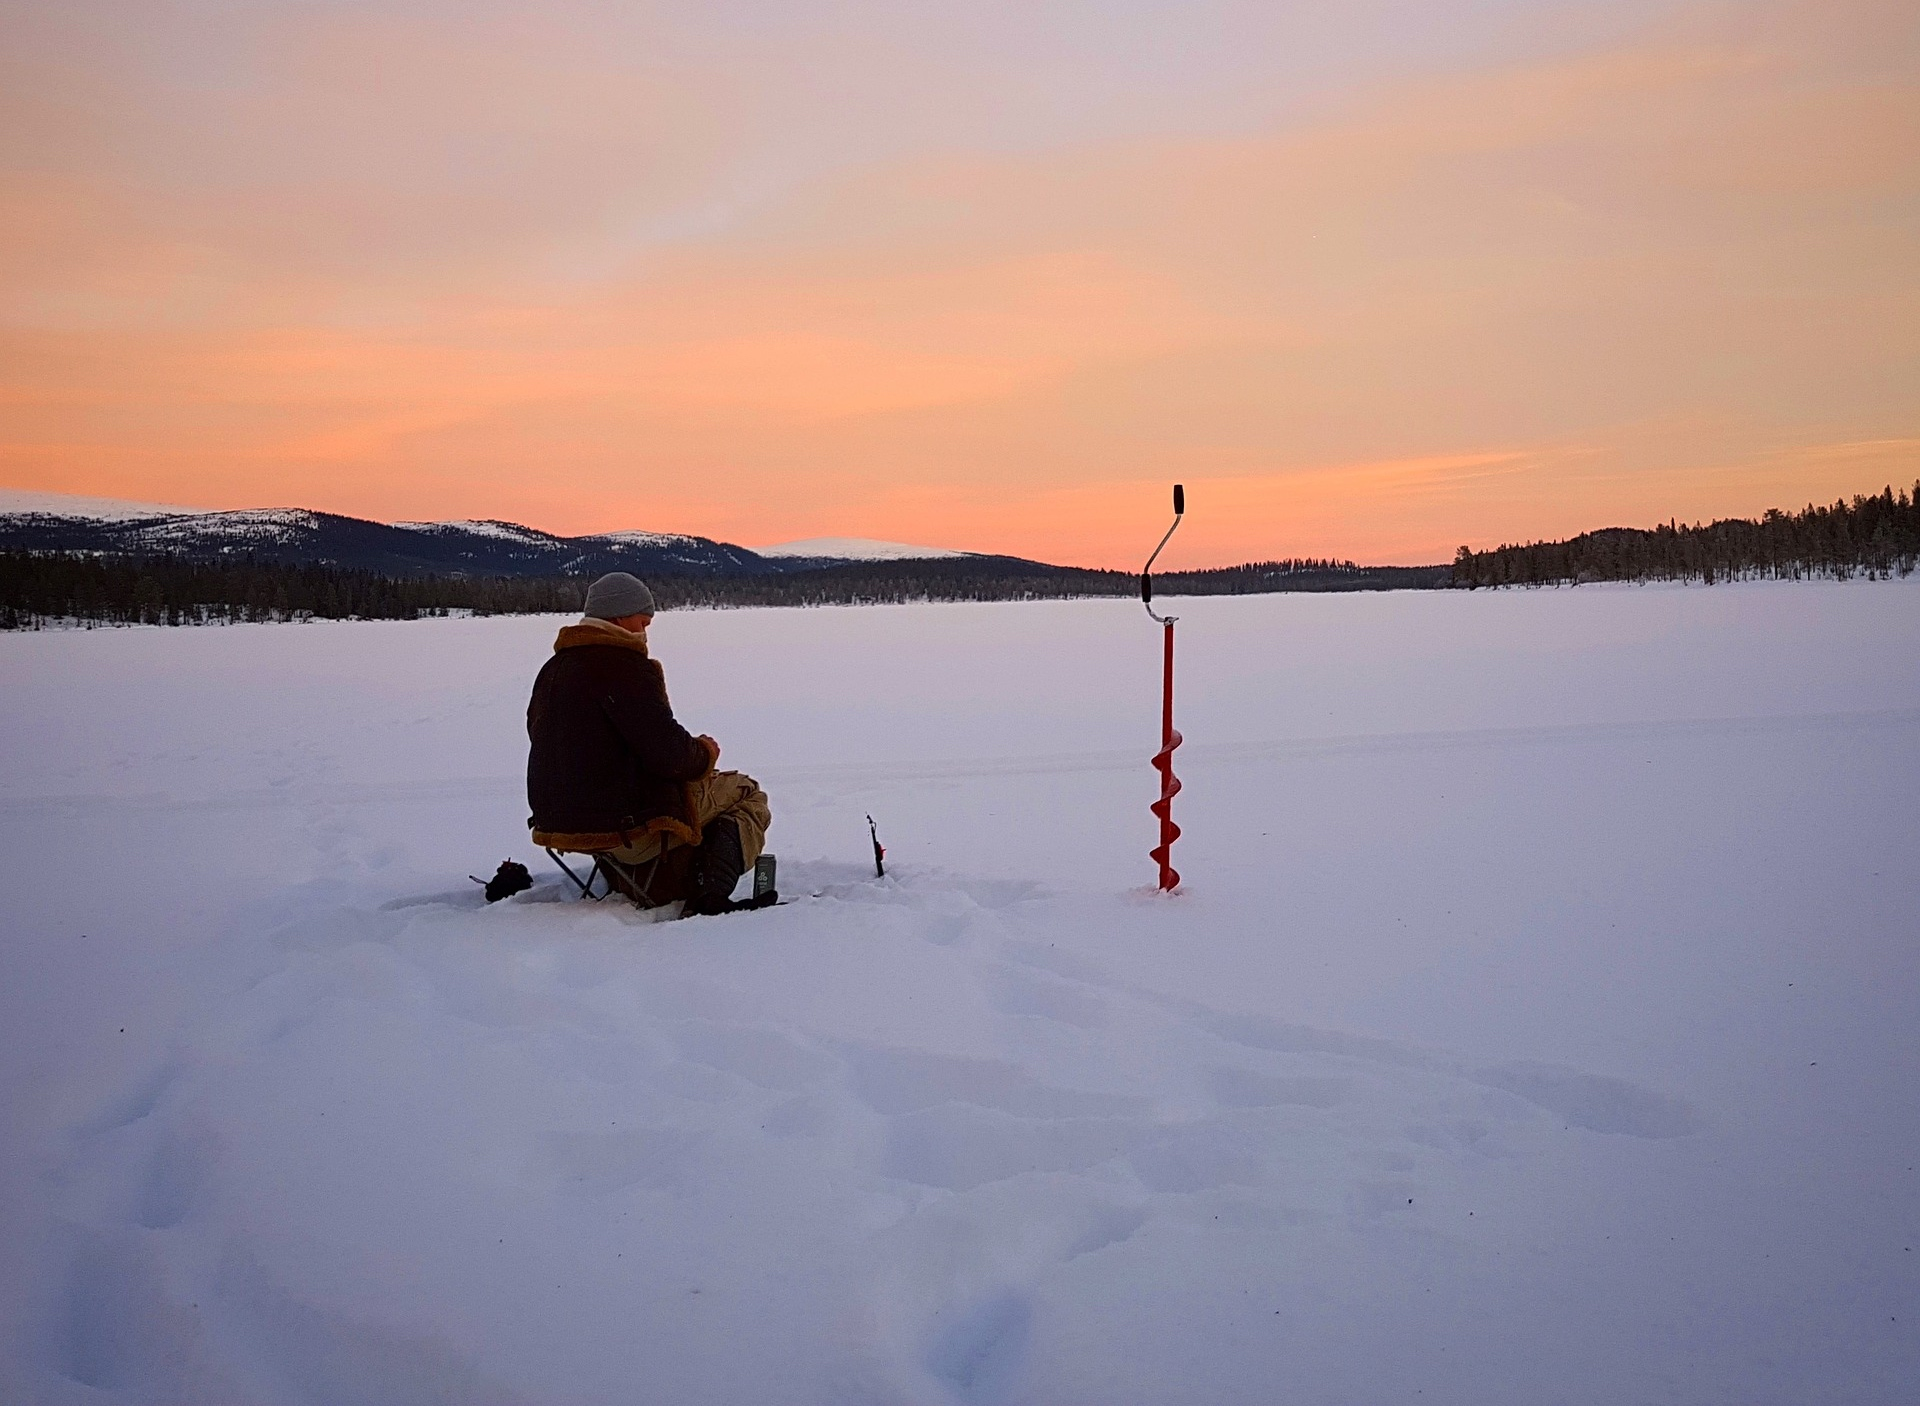 ice fishing - ways to get outside in winter